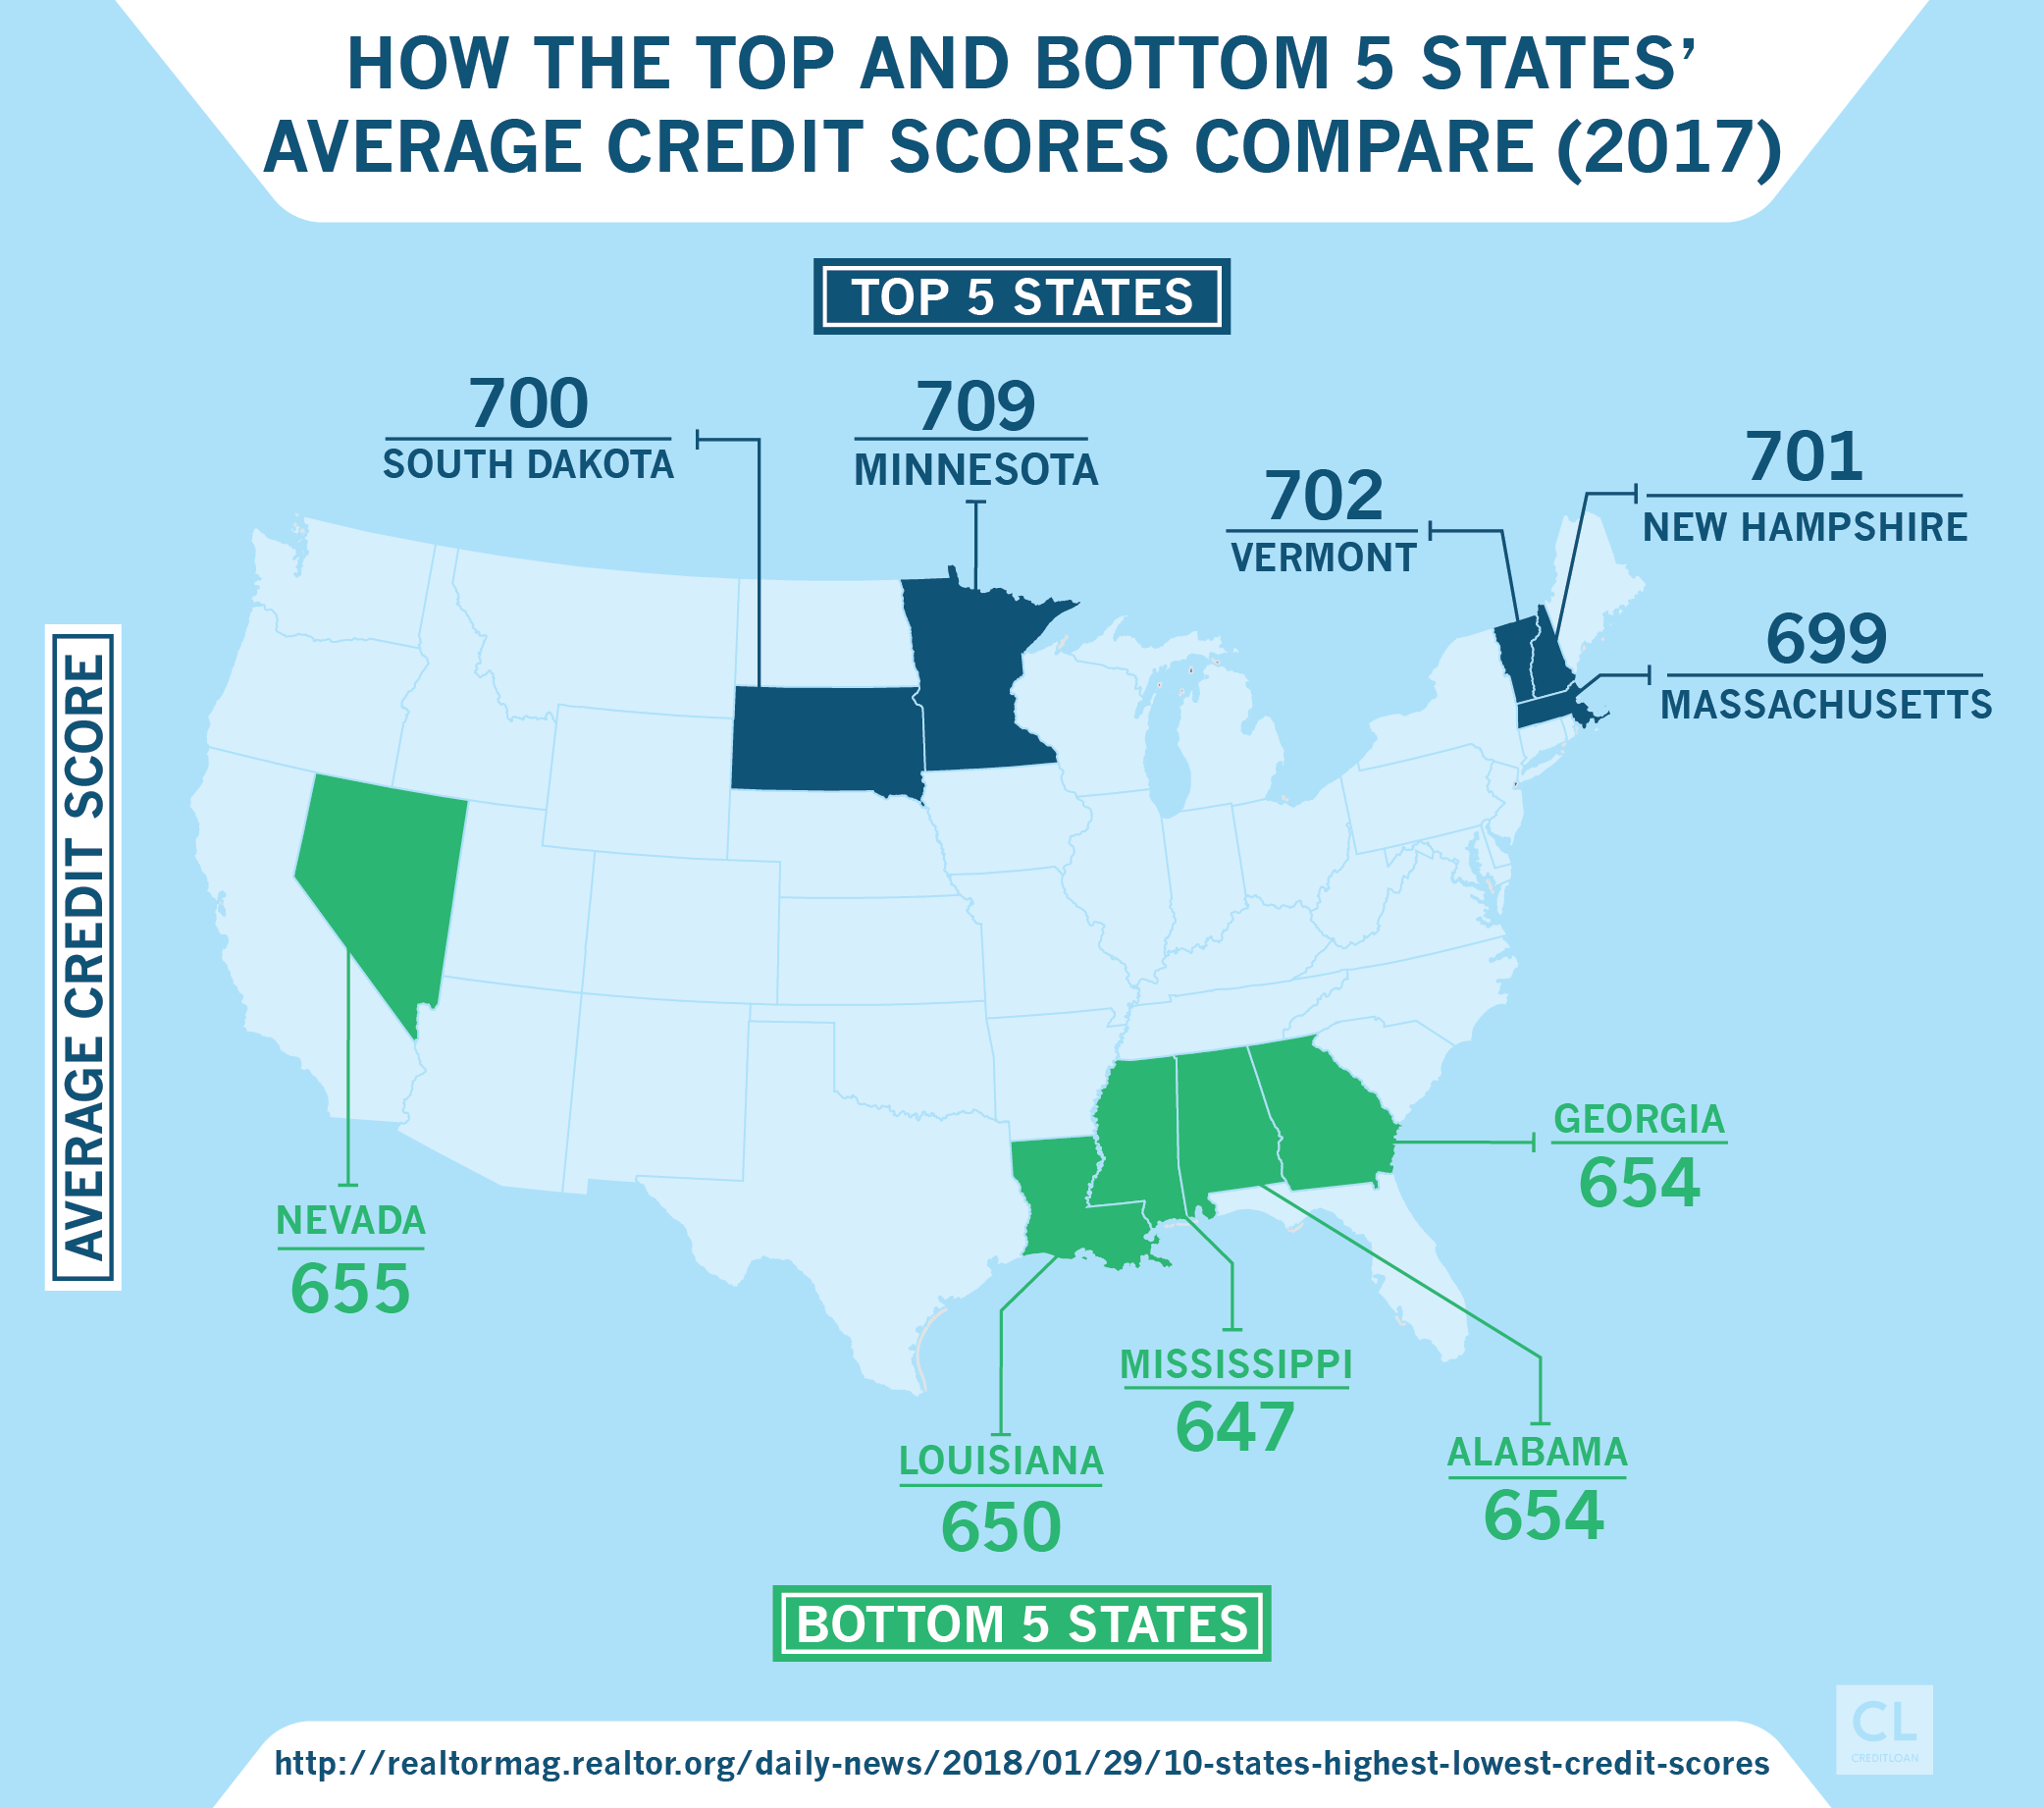 How the Top and Bottom 5 States' Average Credit Scores Compare